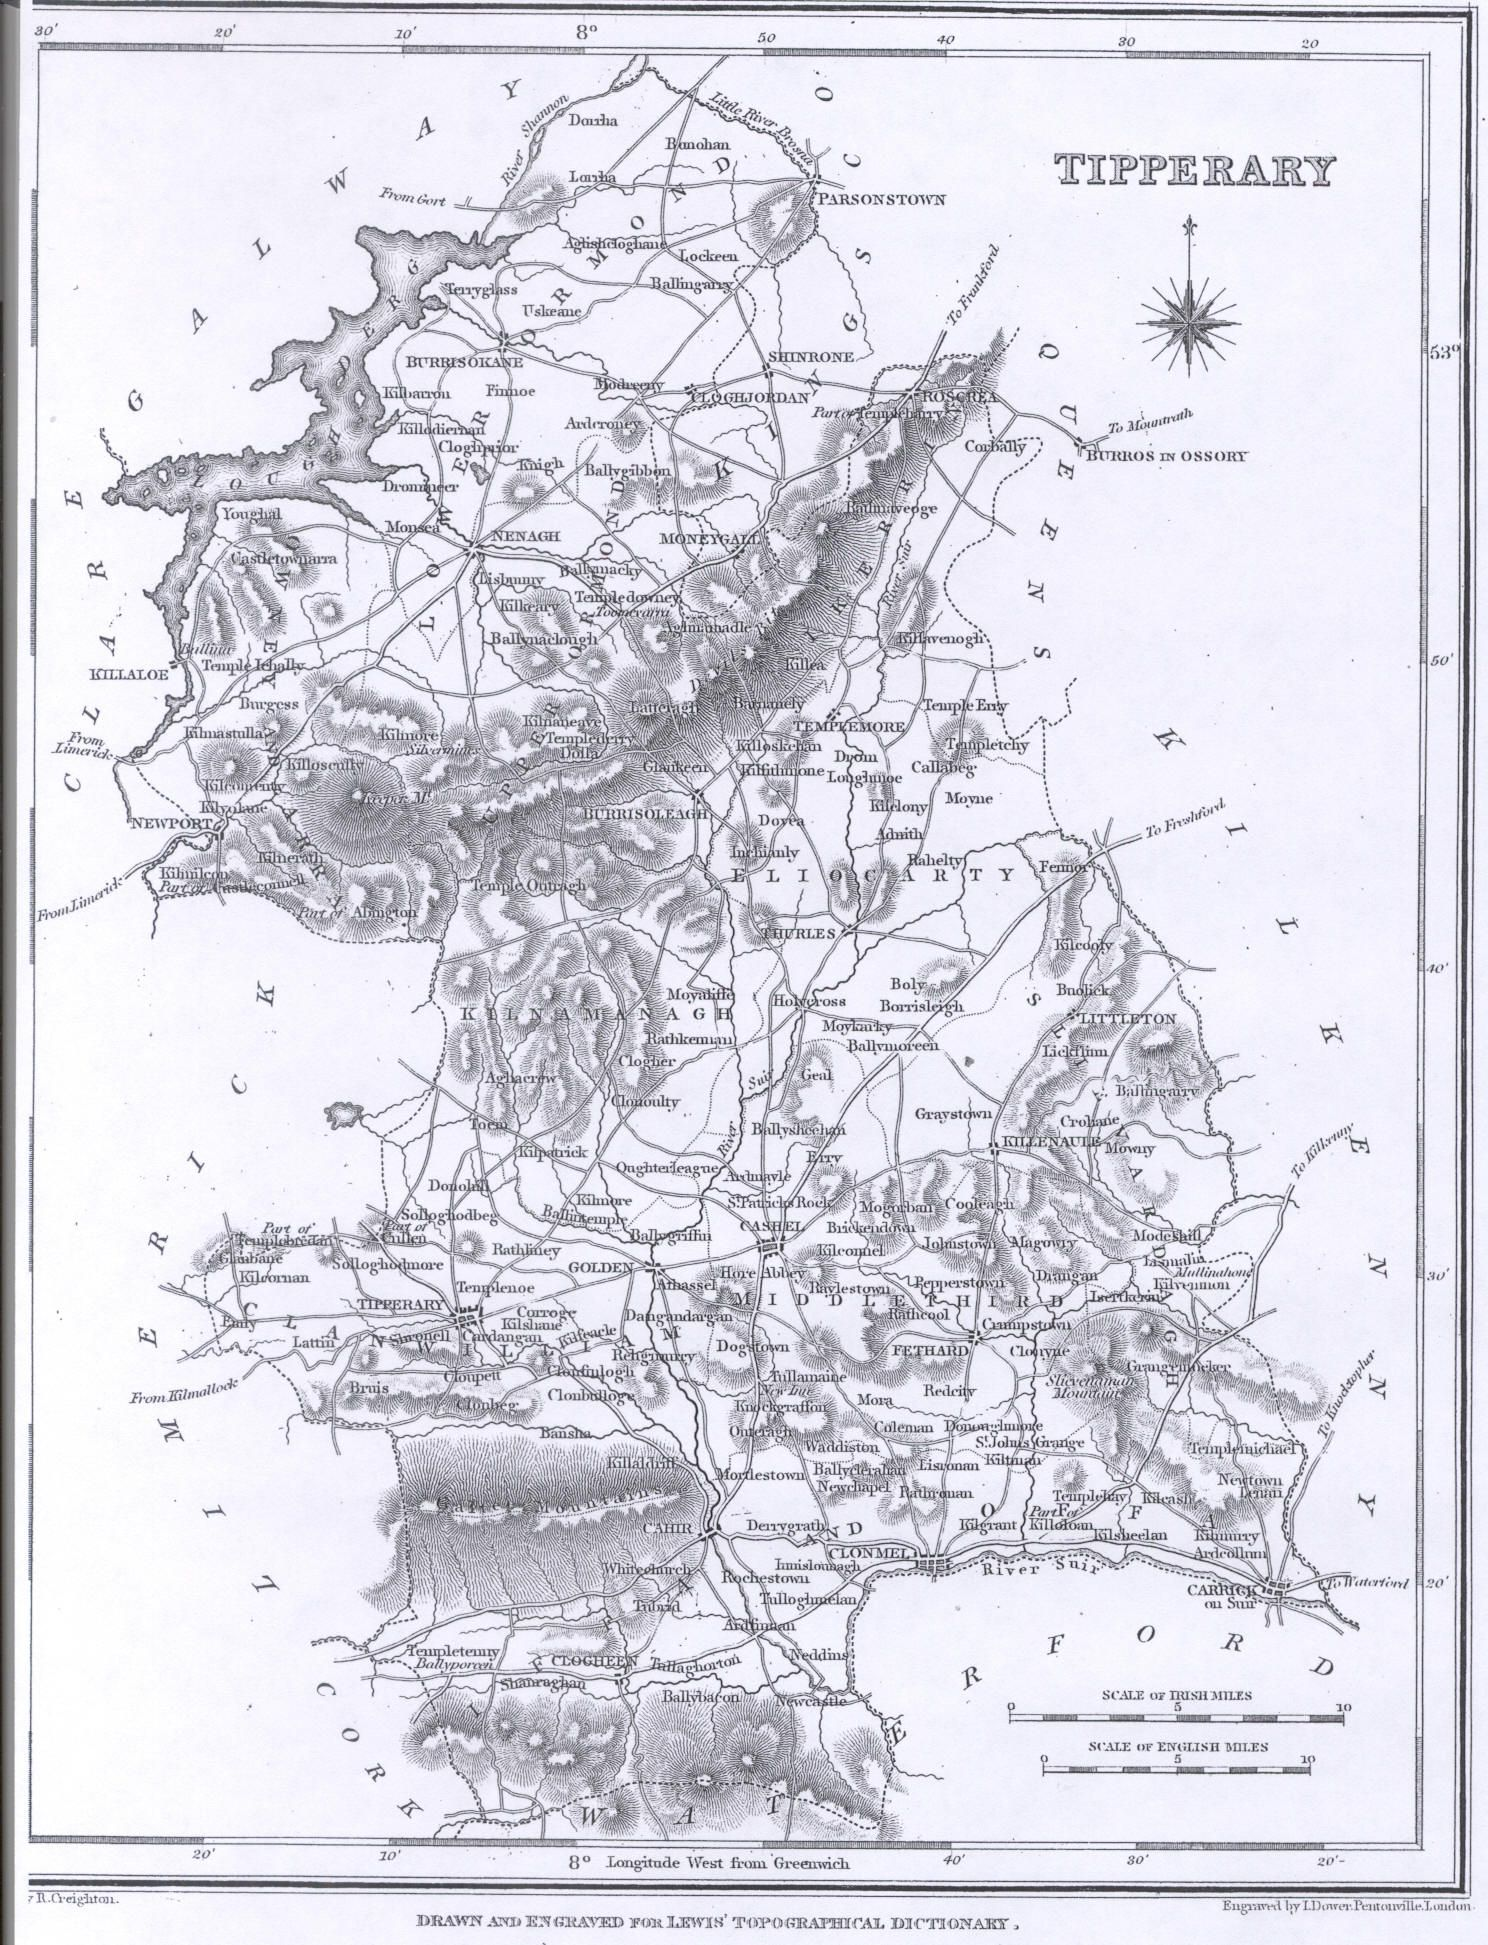 County Tipperary Ireland Map.Lewis 1837 Atlas Counties Of Ireland County Of Tipperary My